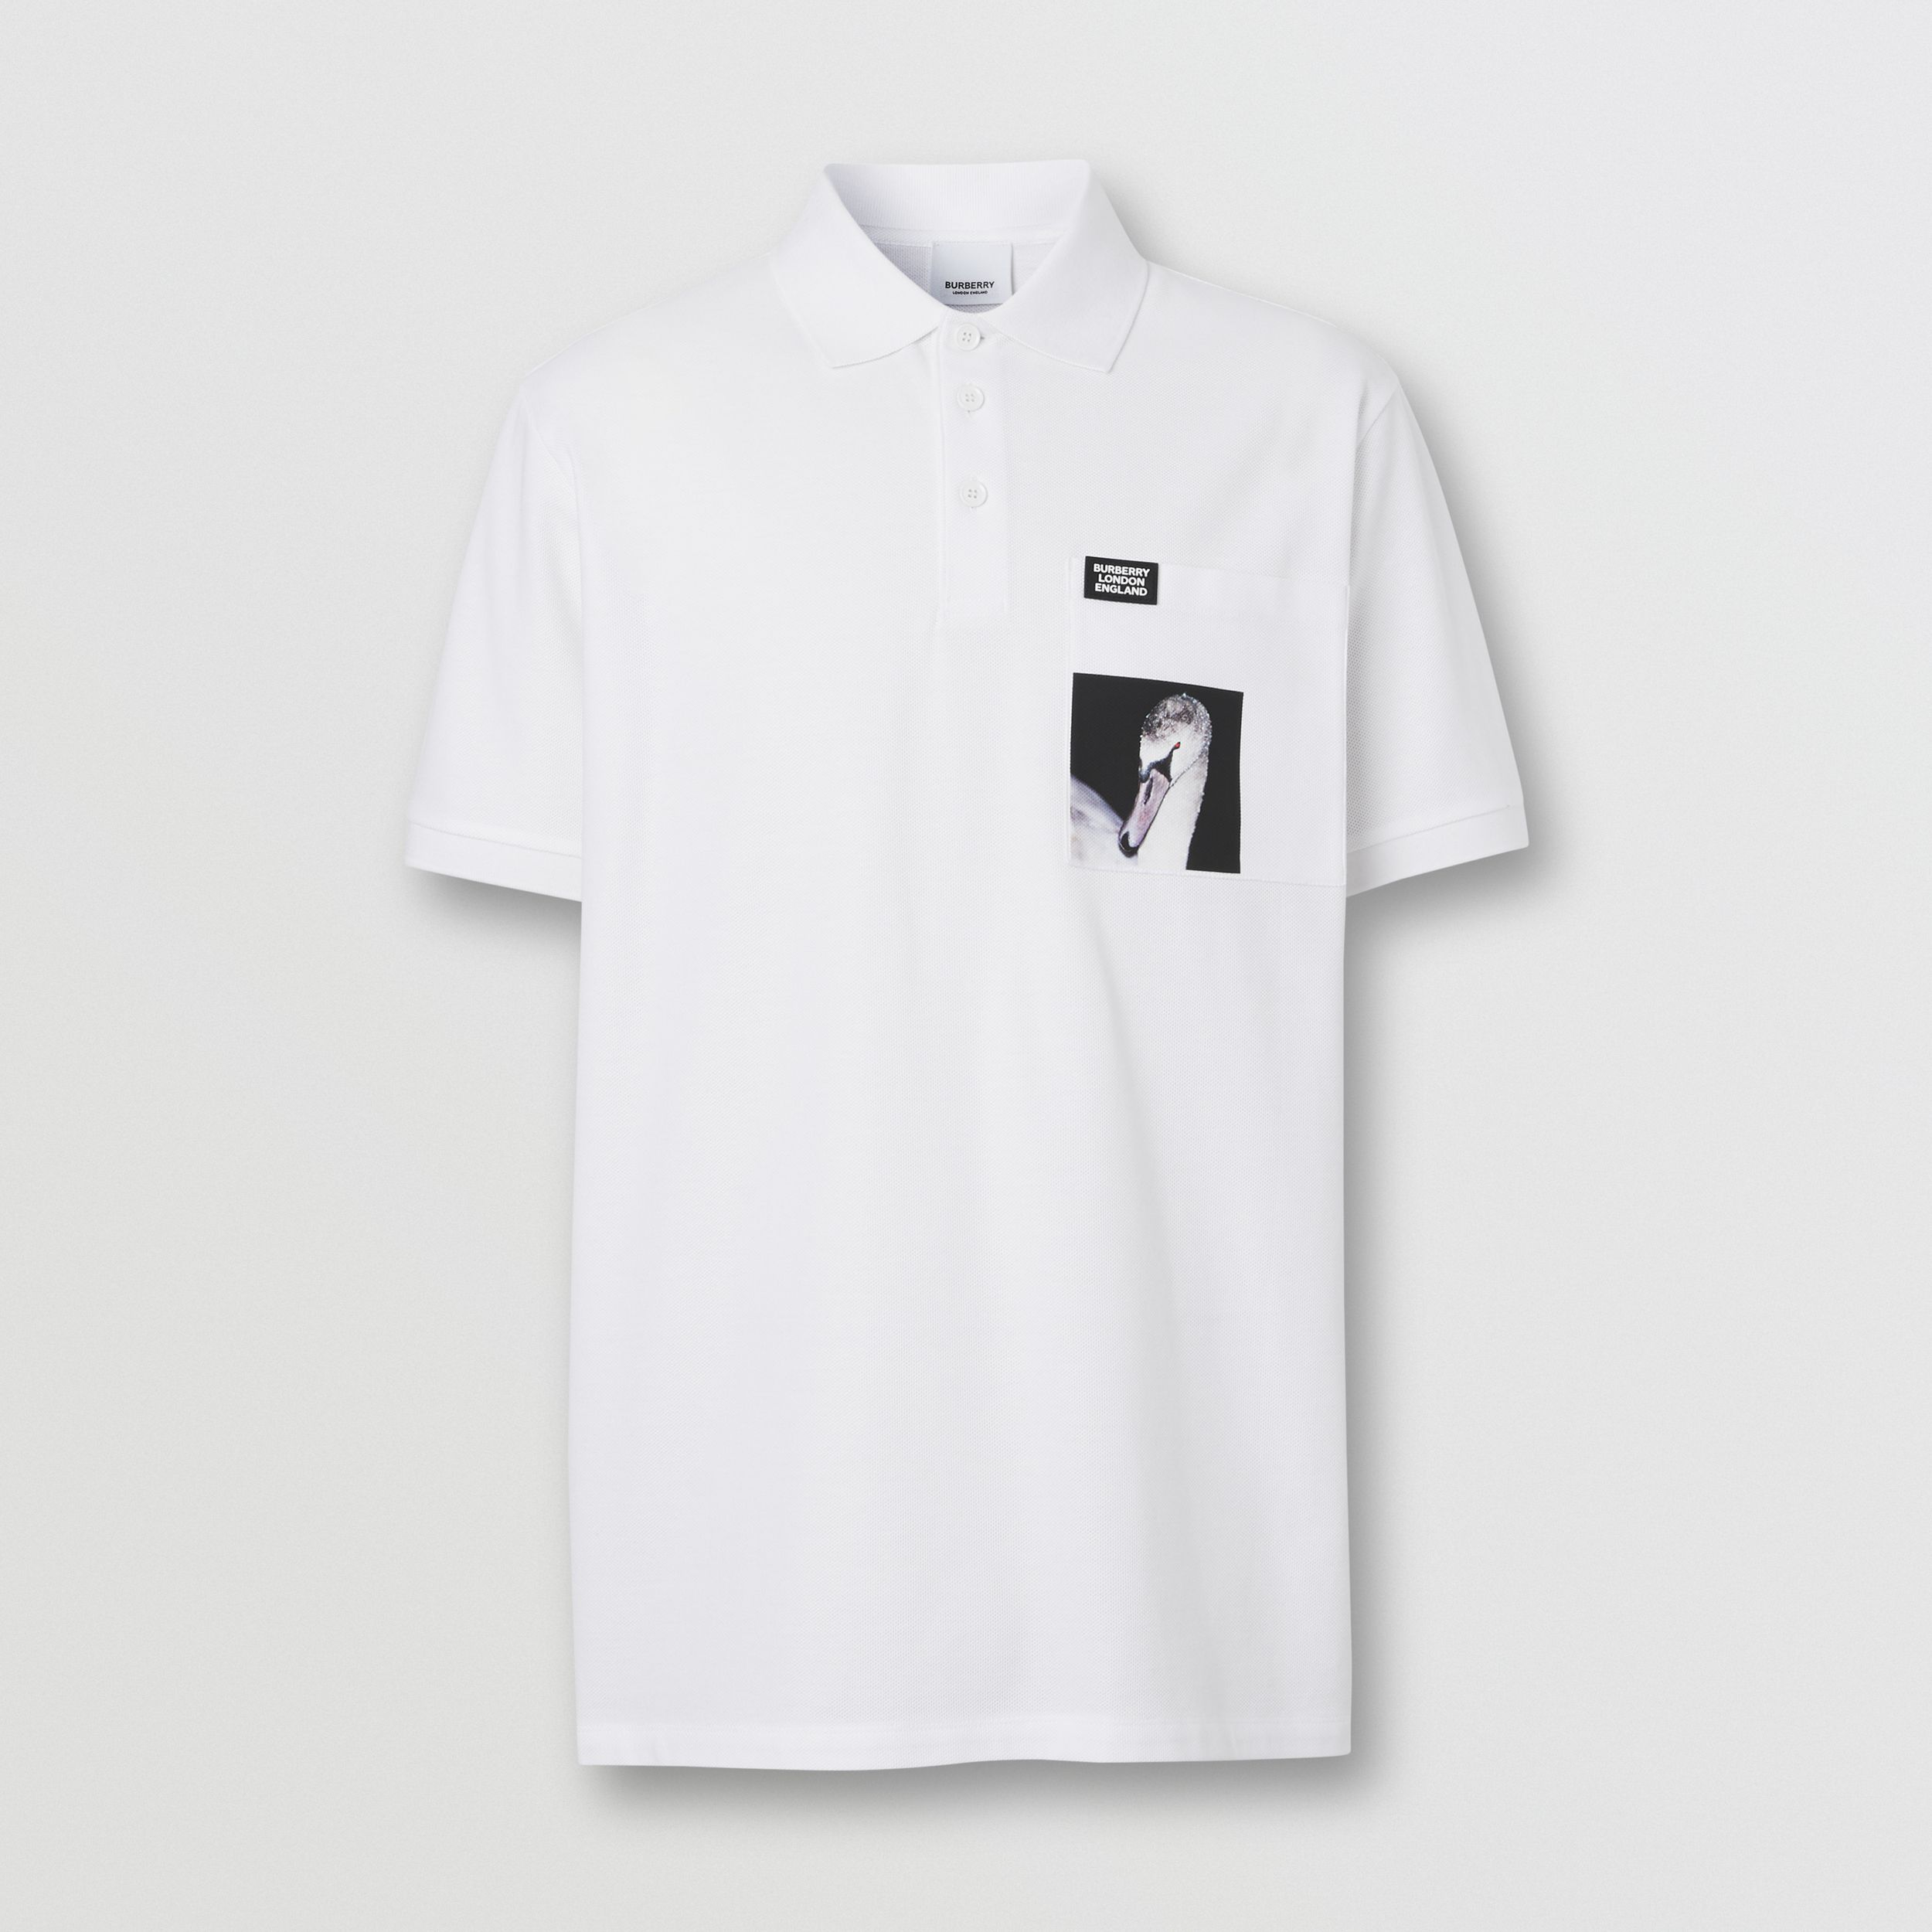 Swan Print Cotton Polo Shirt in White - Men | Burberry - 4